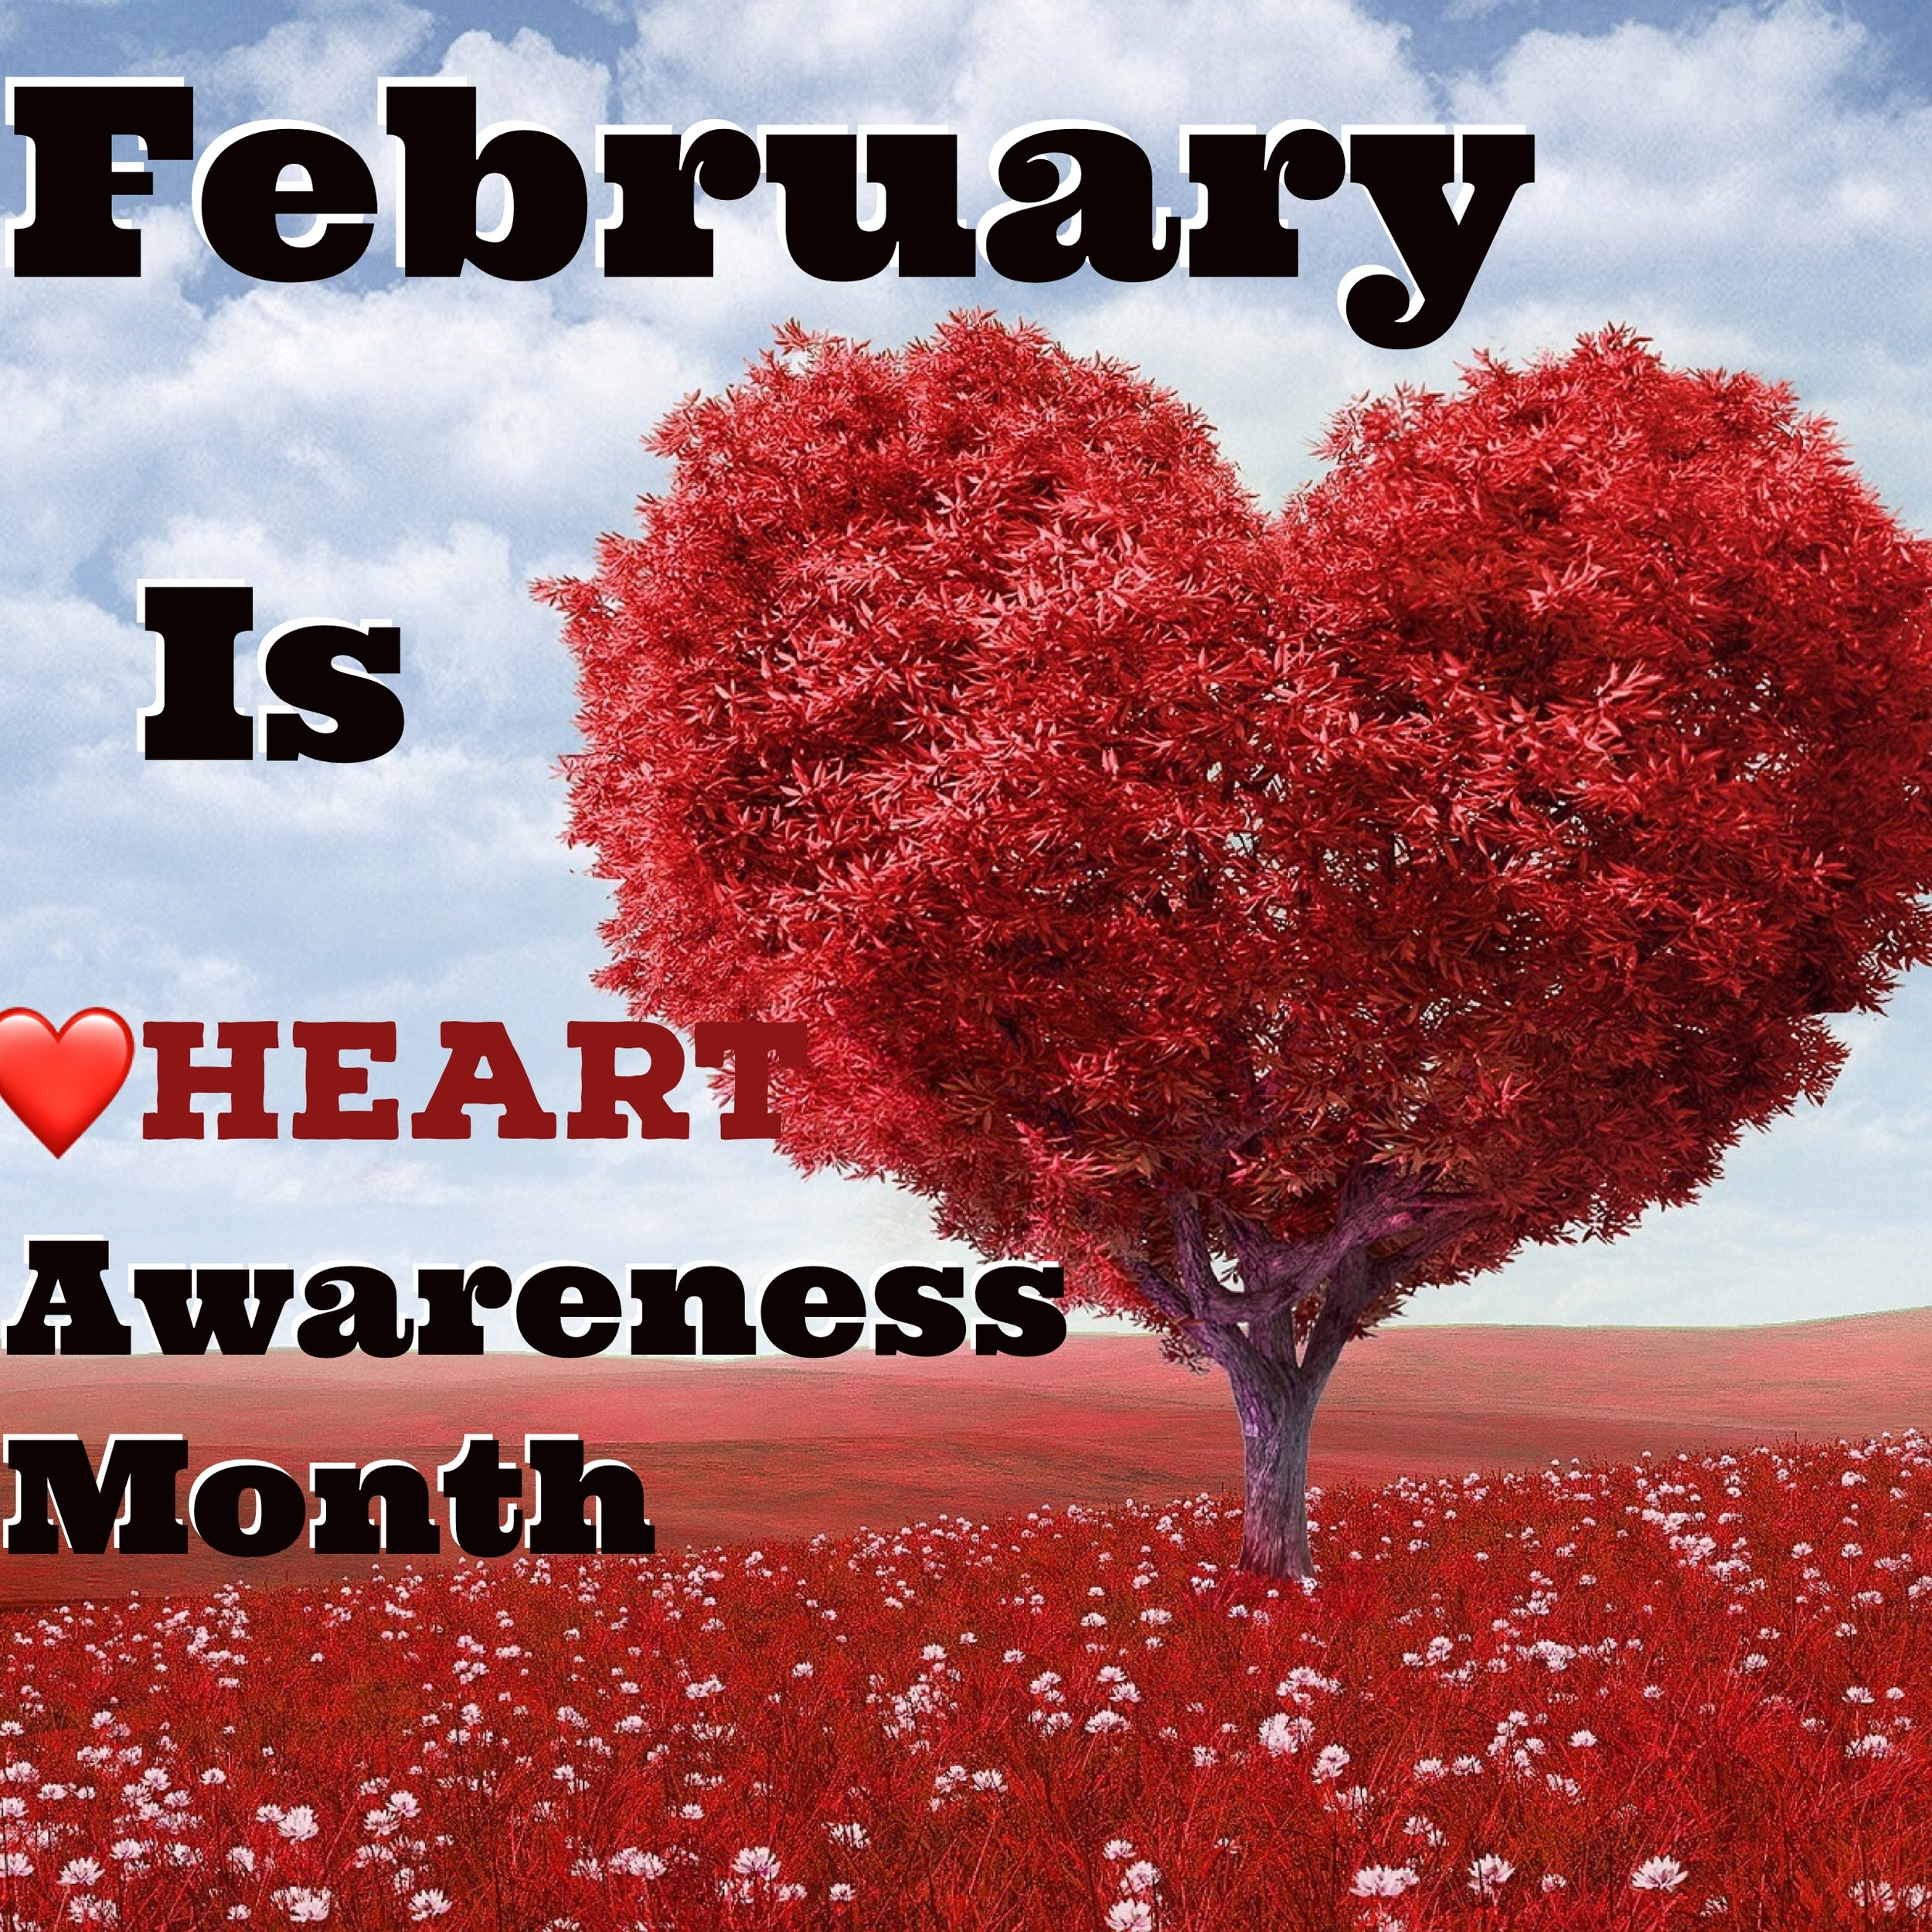 - Wear Red the 2nd Sunday of February (Sun, Feb. 10)